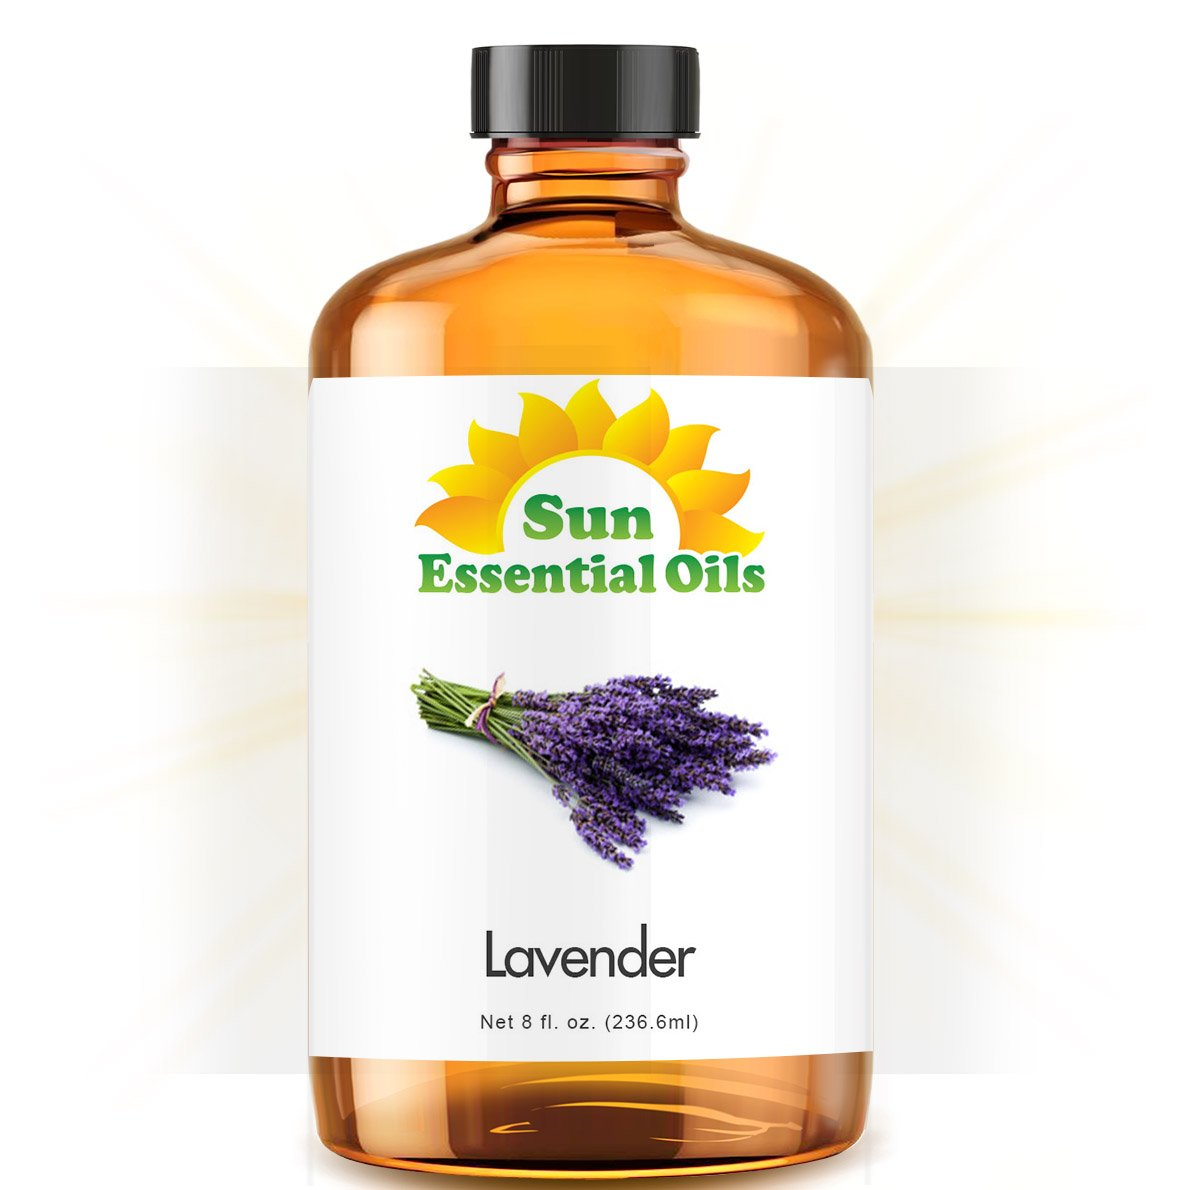 Lavender Essential Oil by Sun Essentials, 4oz Sun Organic